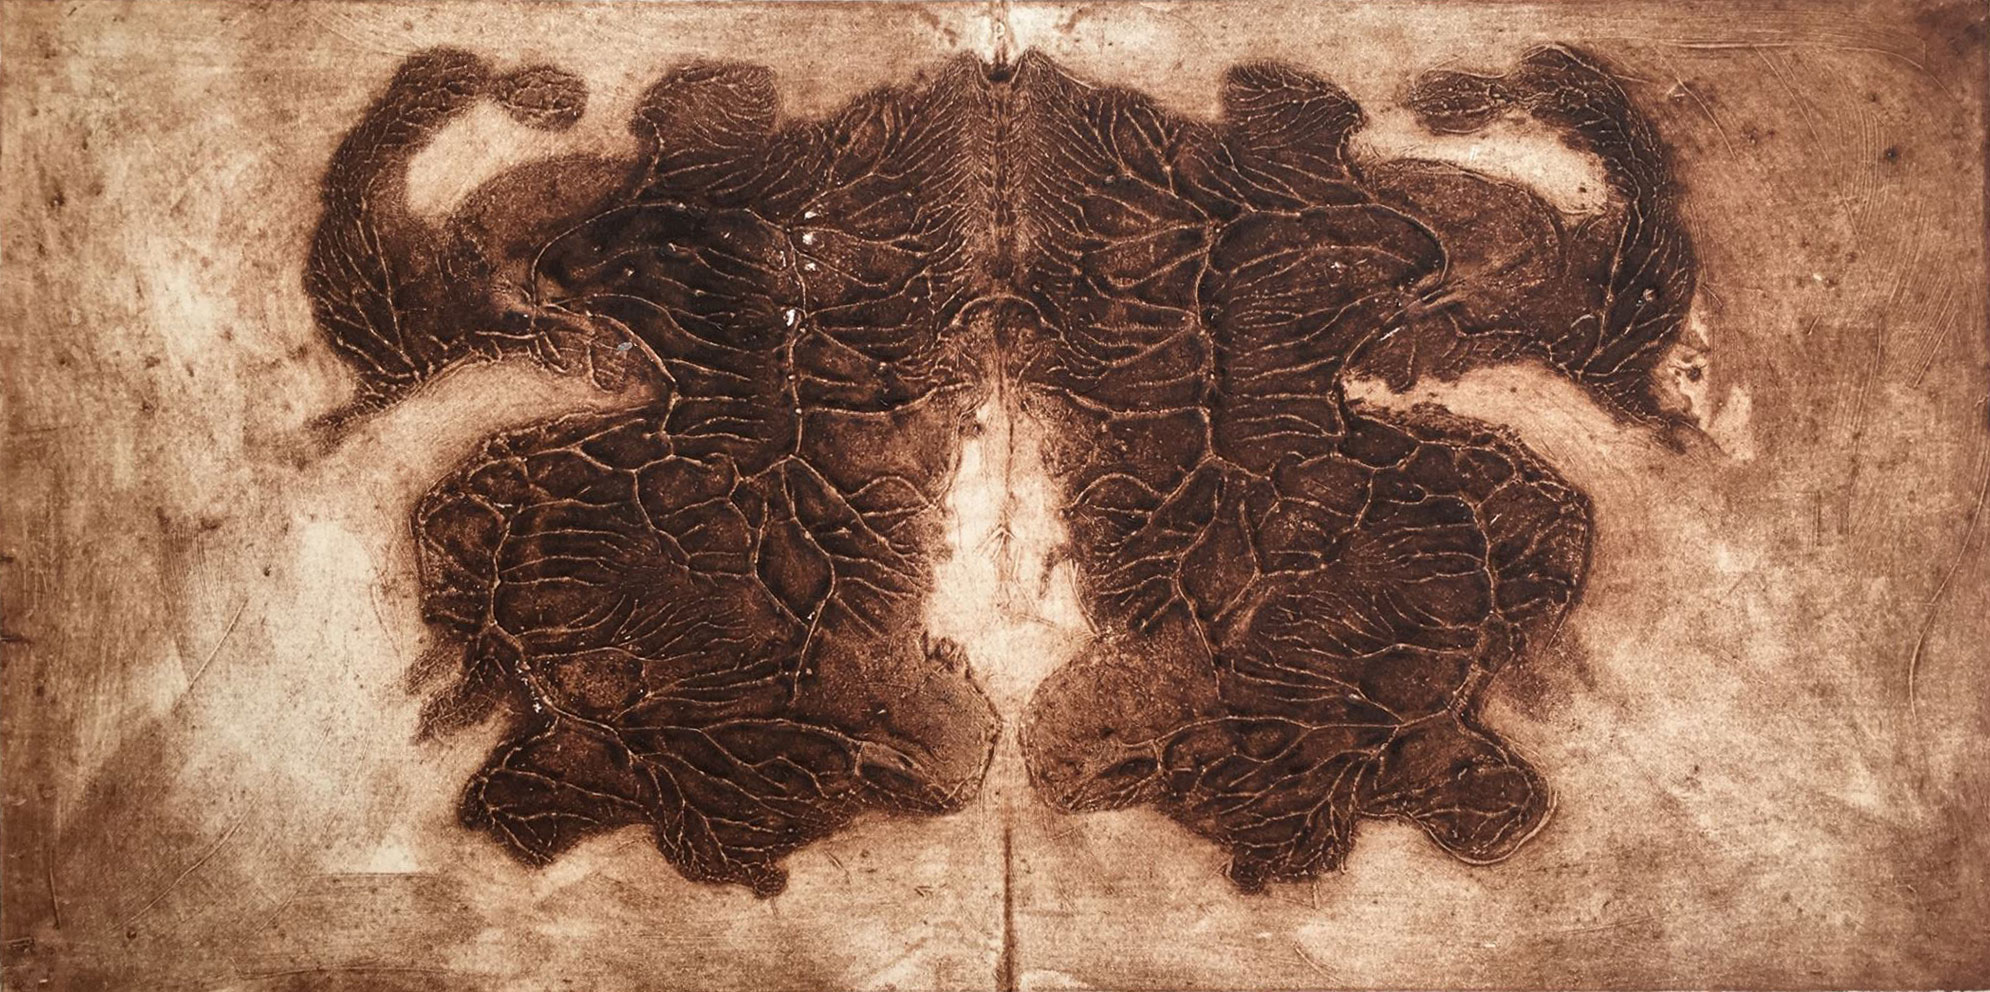 Untitled, 2018, collagraph